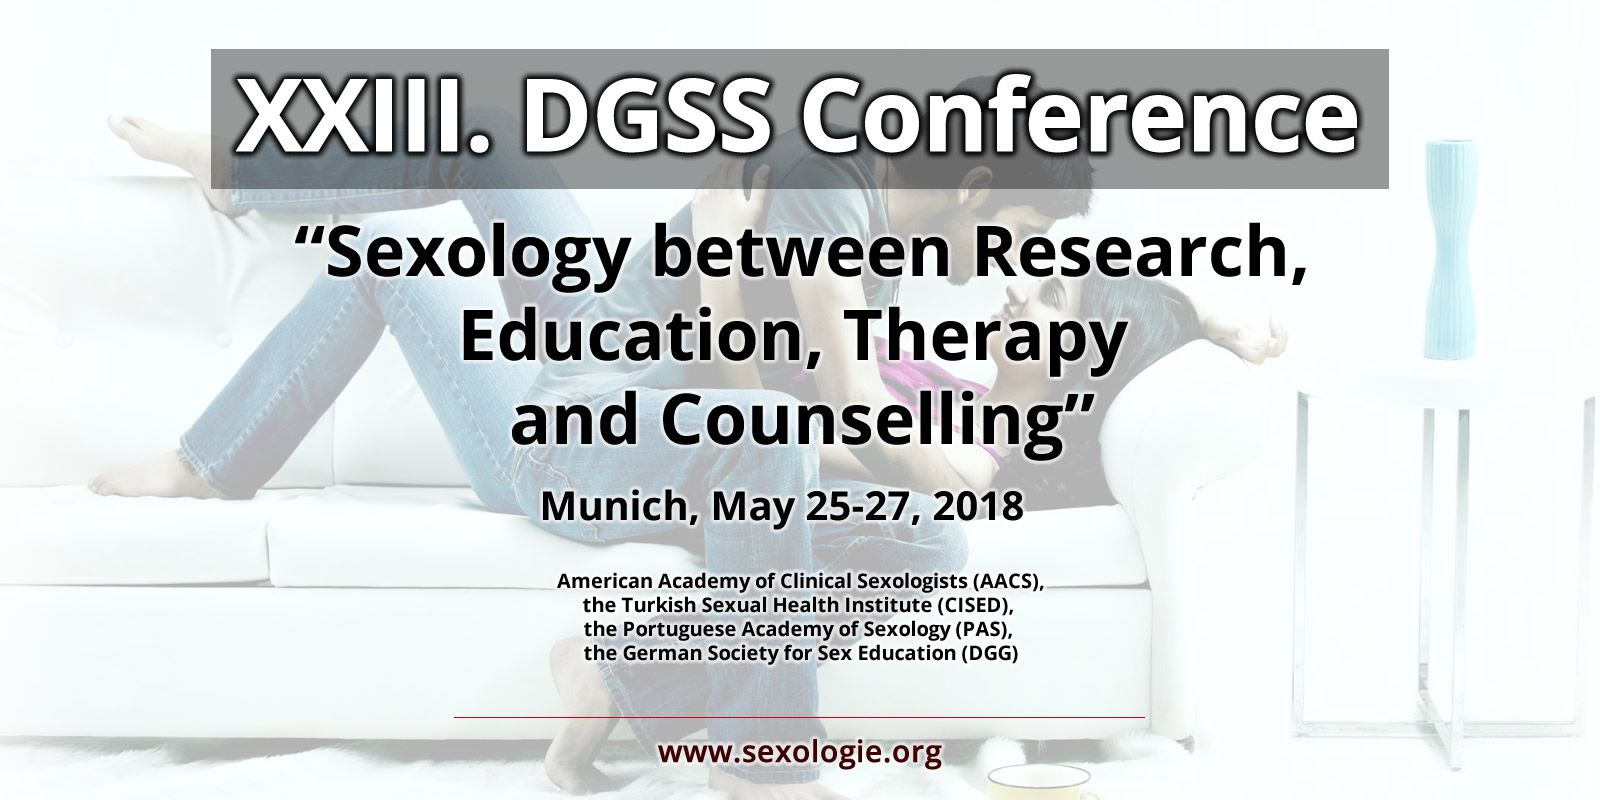 XXIII. DGSS Conference